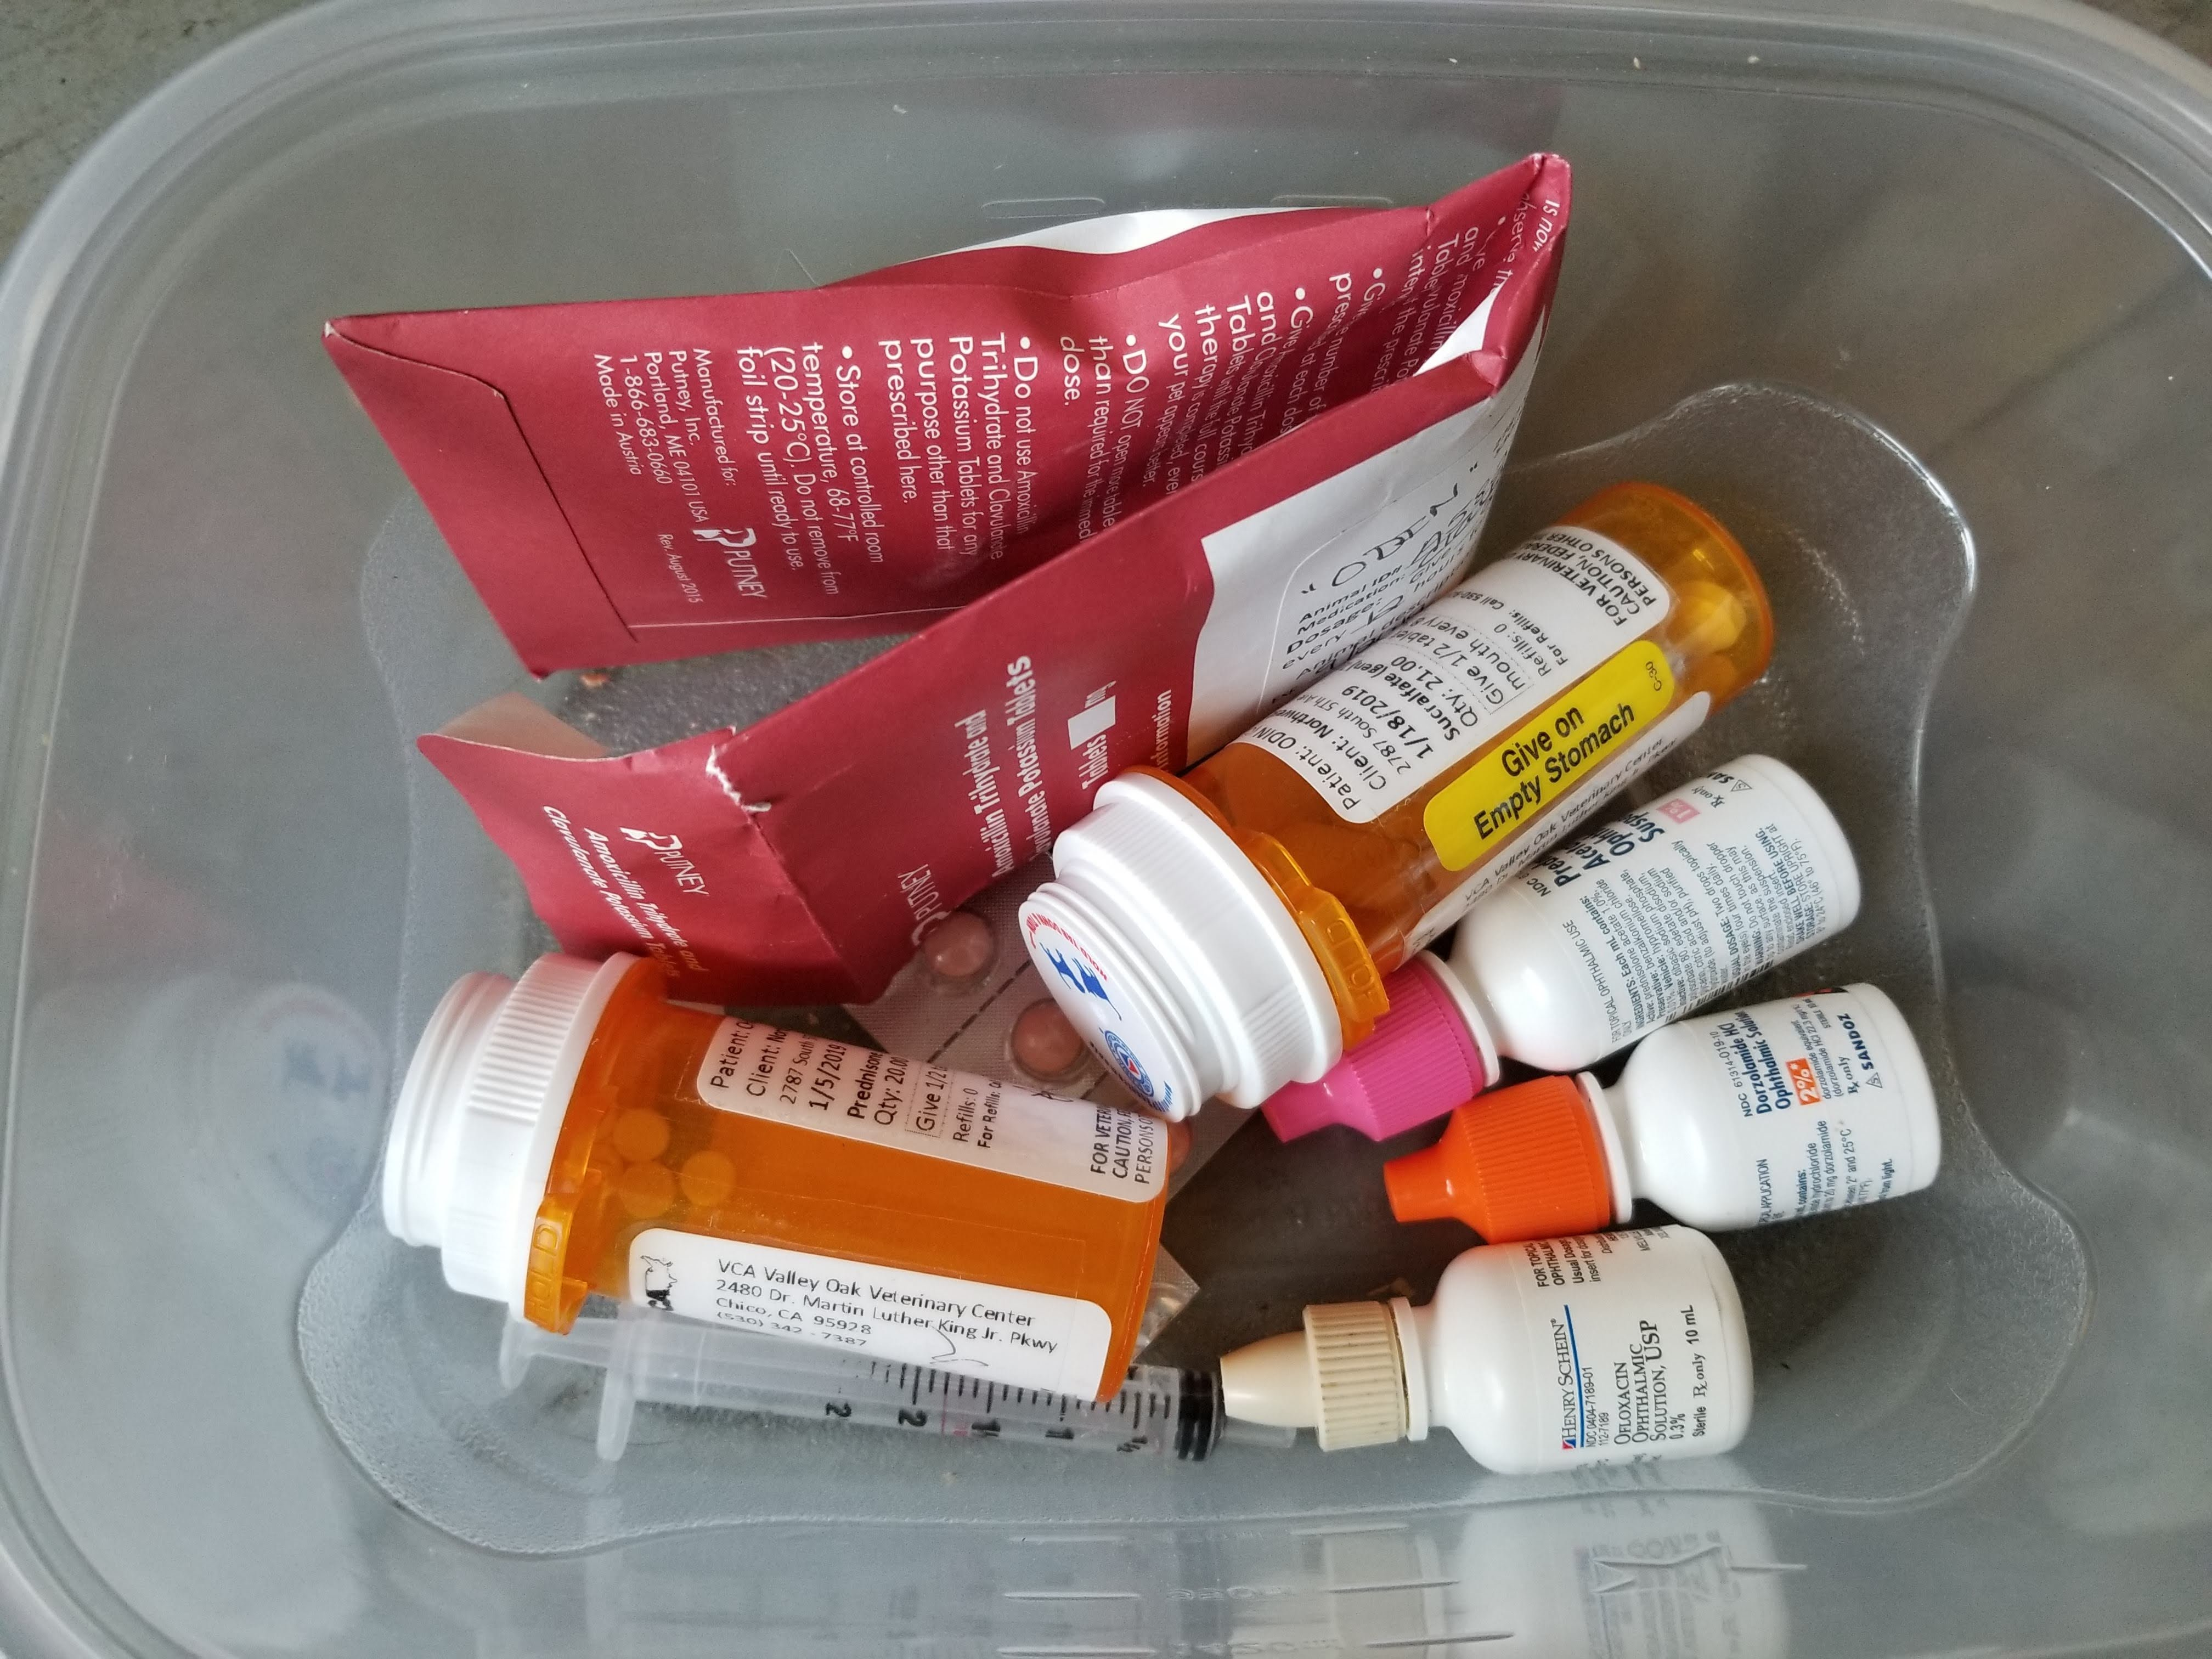 MEDICATIONS FOR DOGS